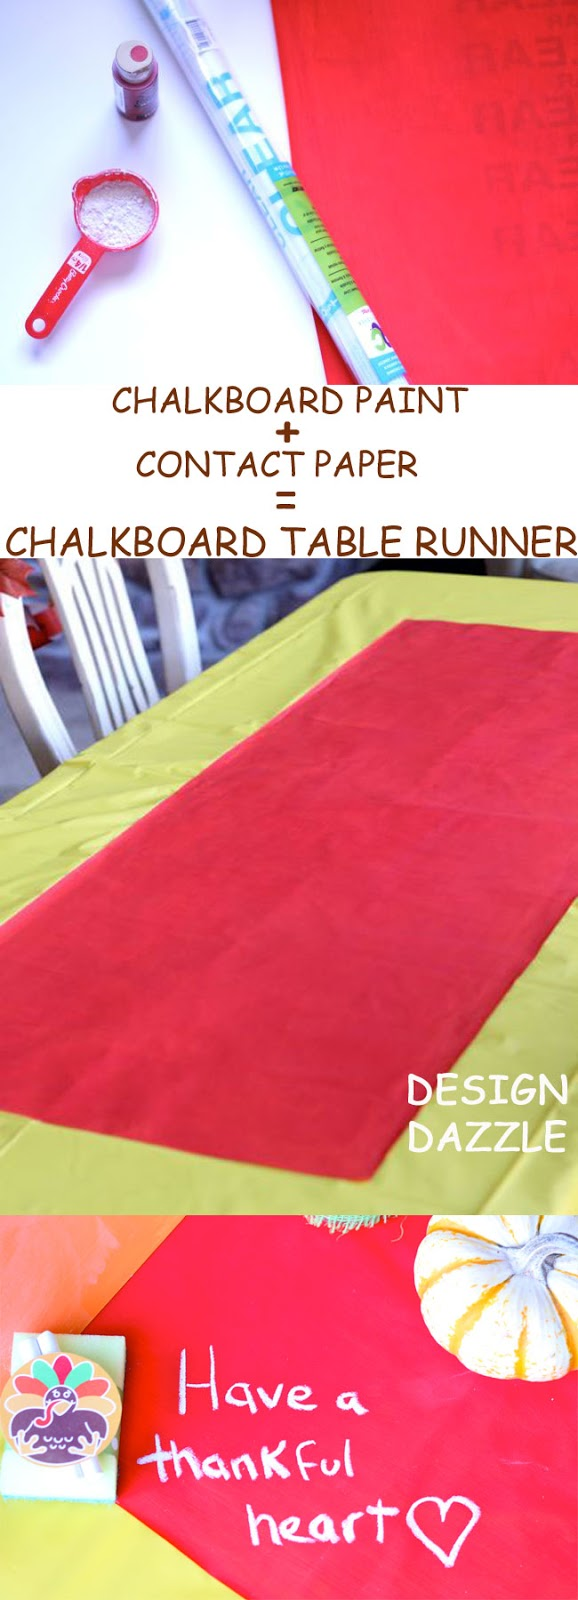 dollar store contact paper made into a colorful chalkboard table runner